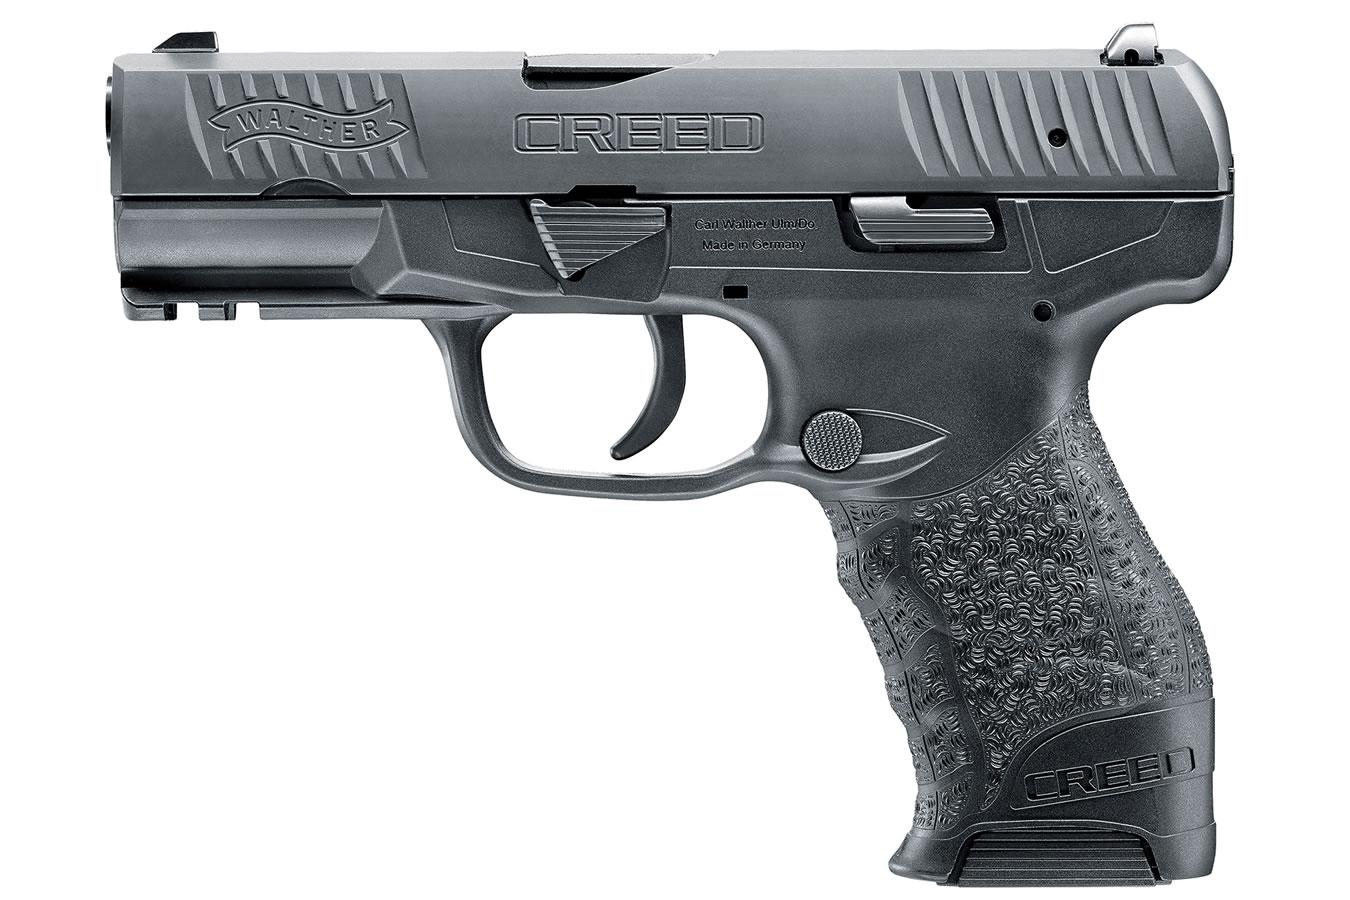 Walther Creed 9mm 16-Round Pis...